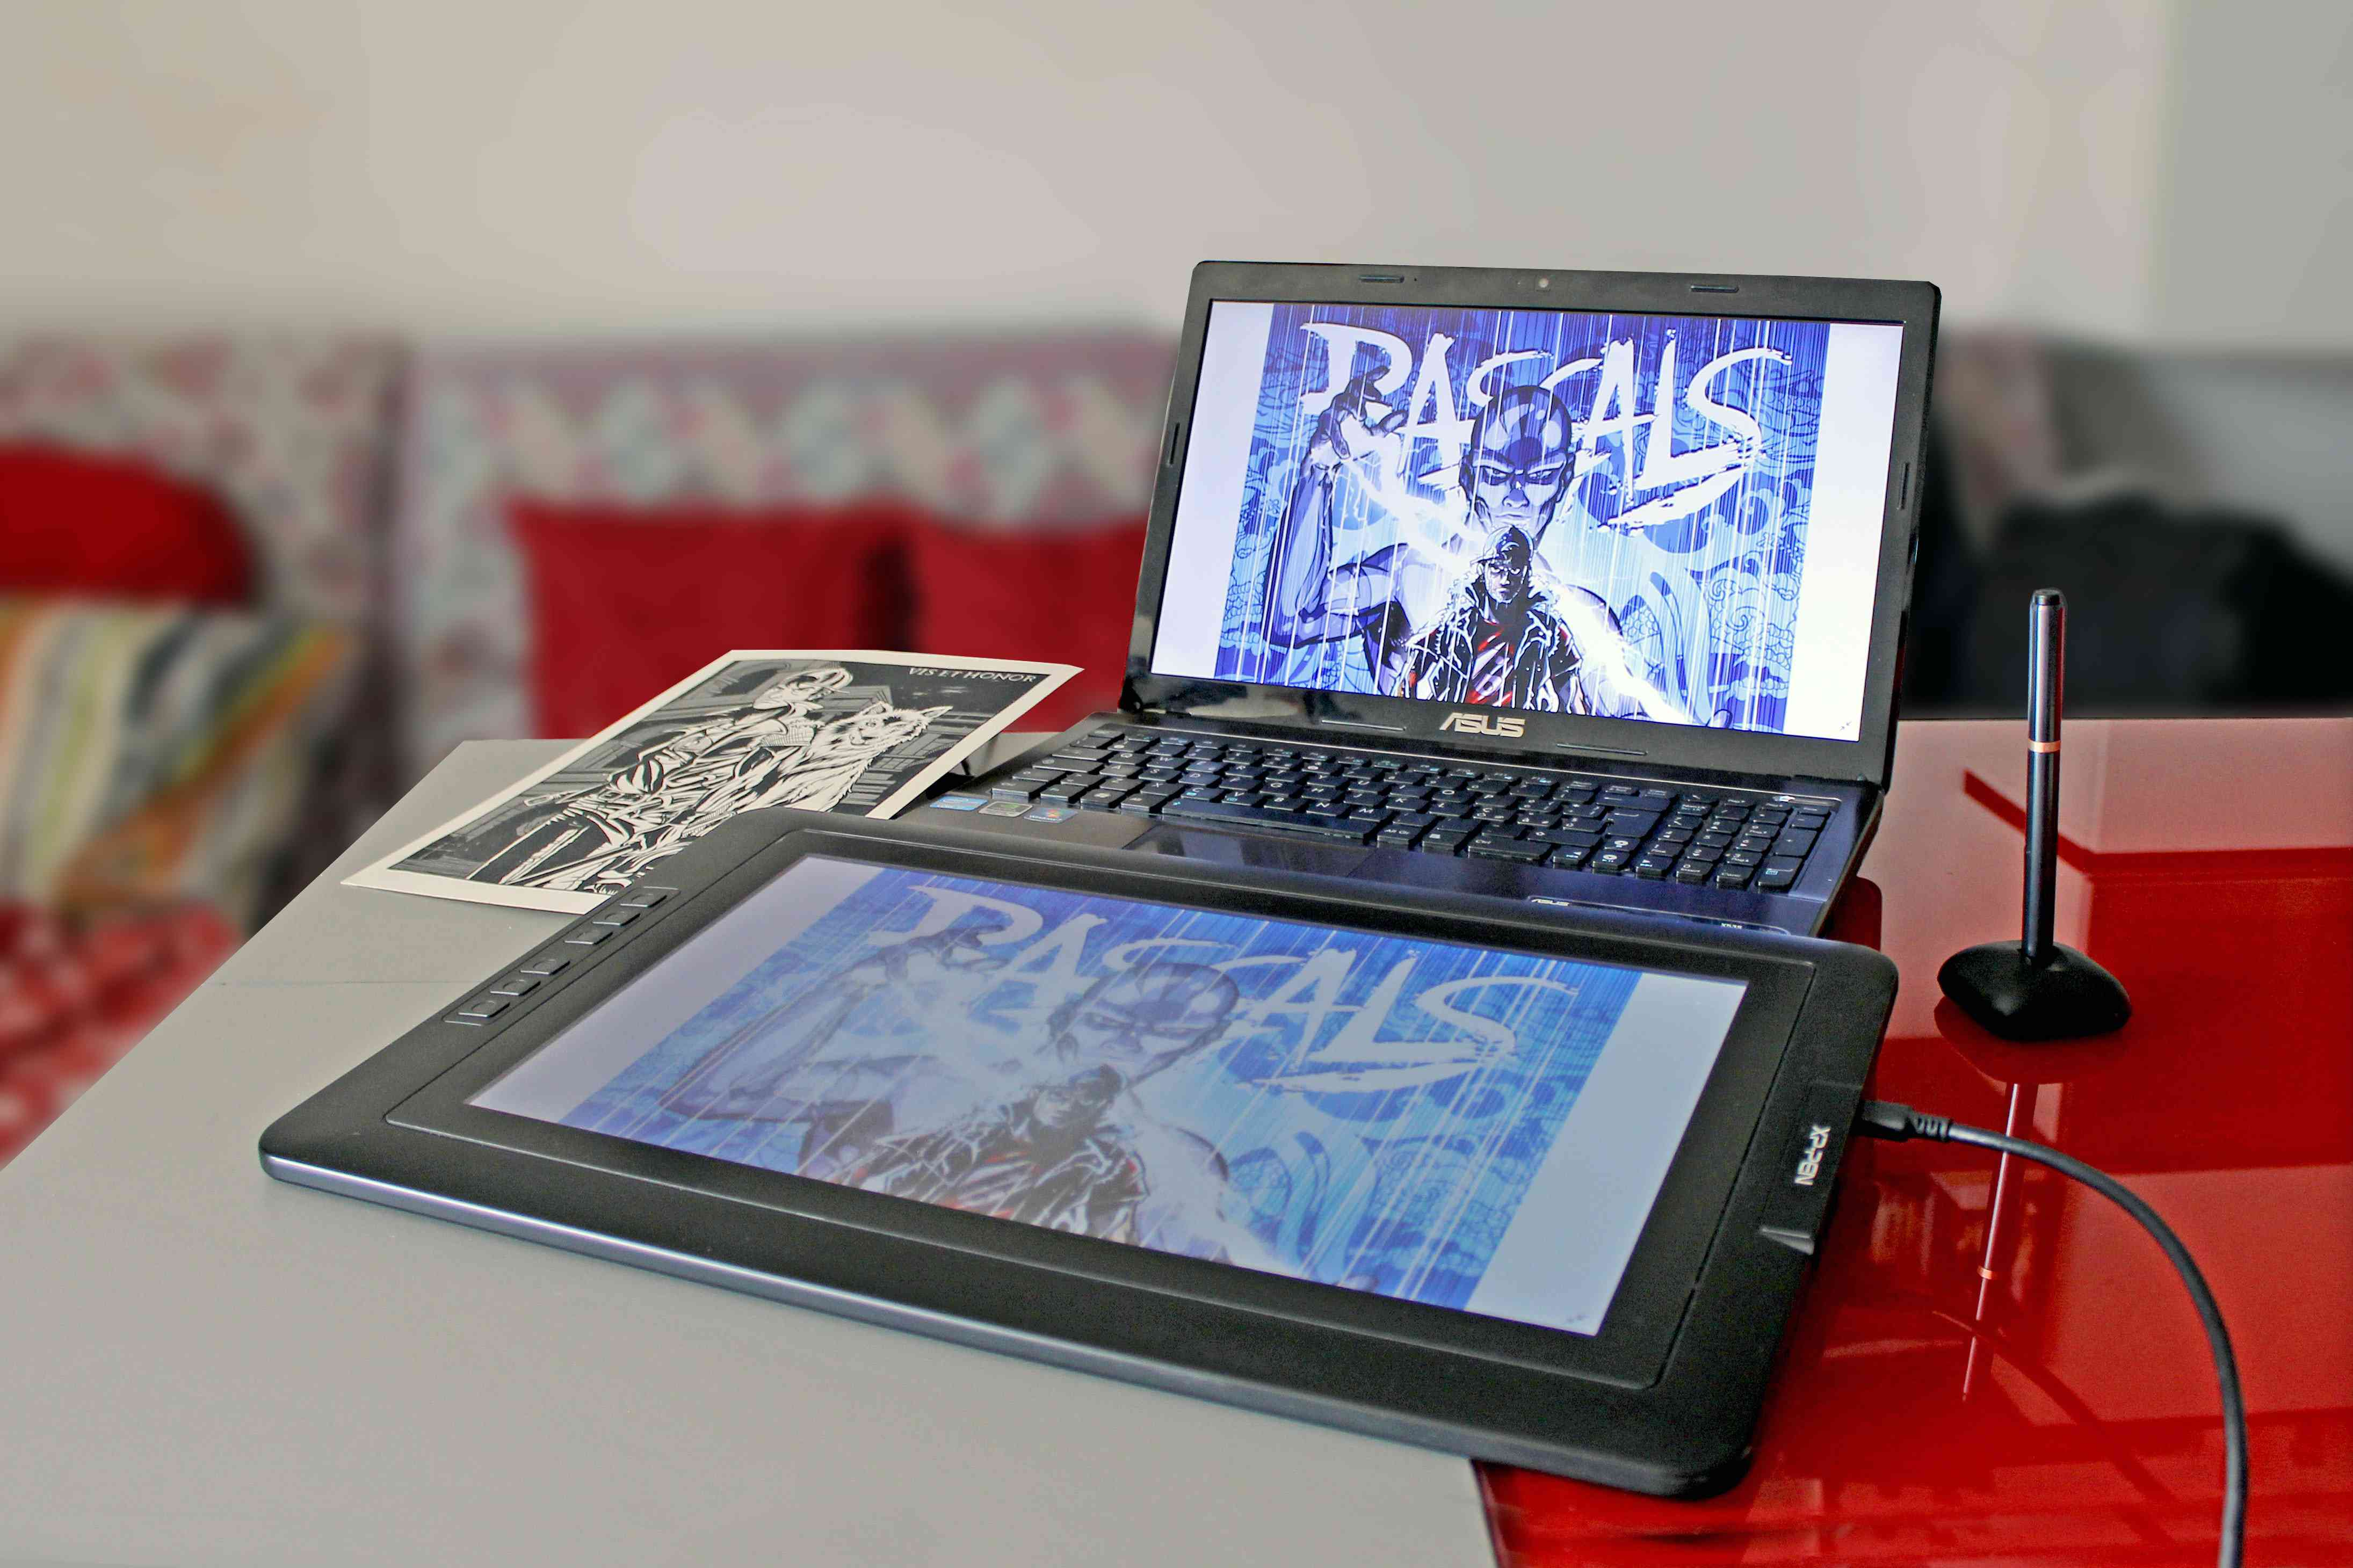 A drawing tablet connected to an Asus computer with a pen in the holder next to it.